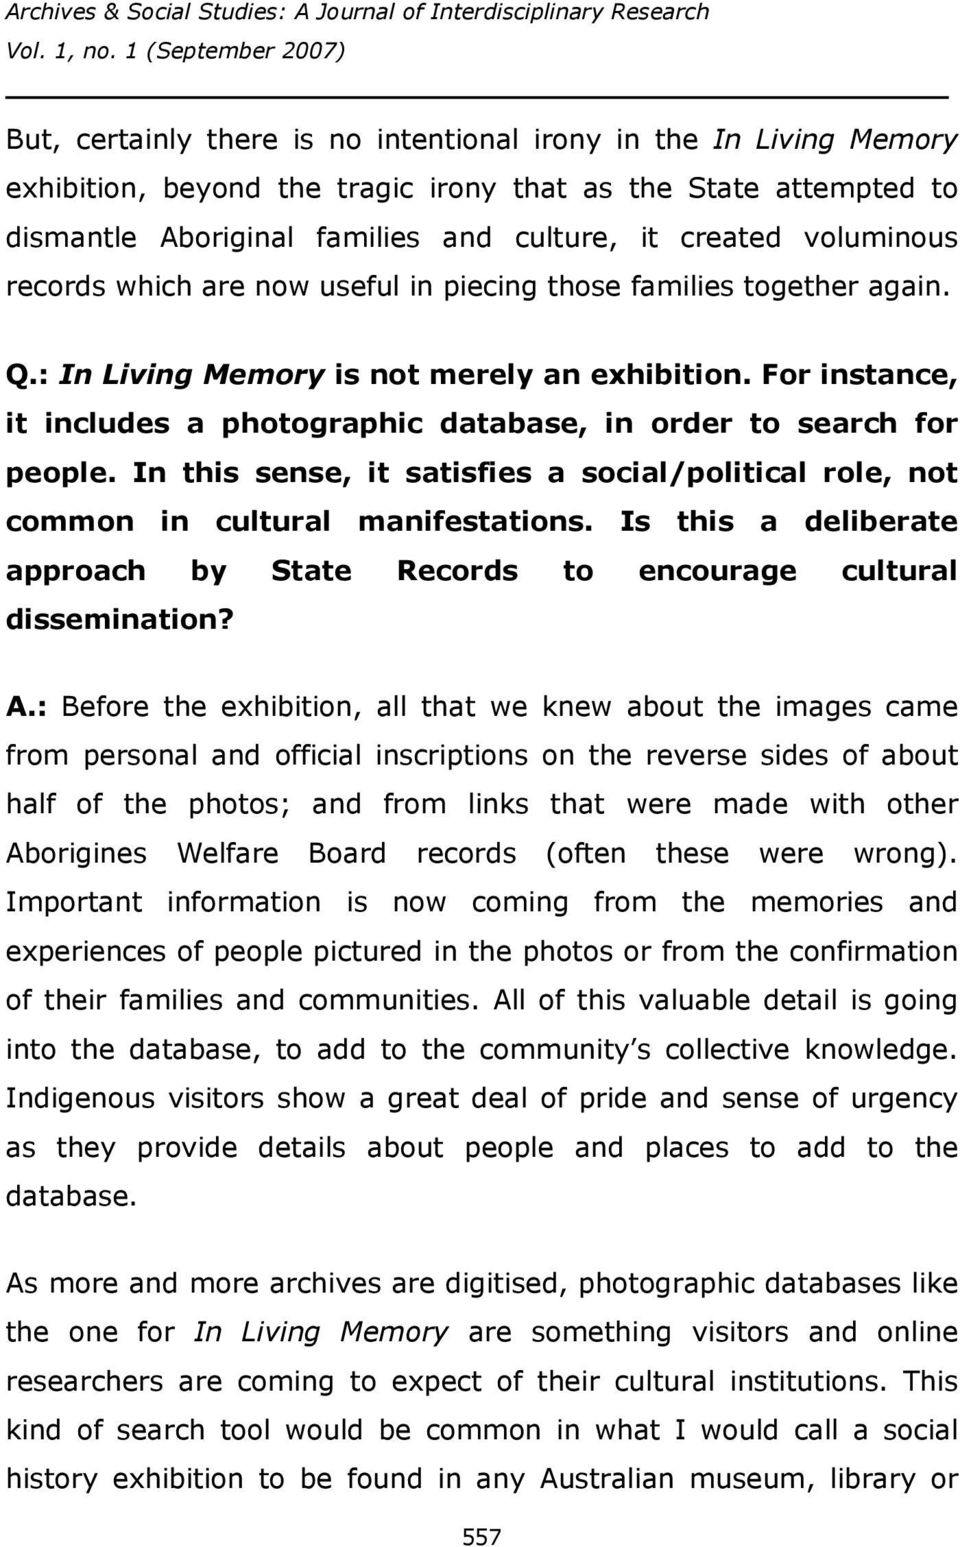 For instance, it includes a photographic database, in order to search for people. In this sense, it satisfies a social/political role, not common in cultural manifestations.